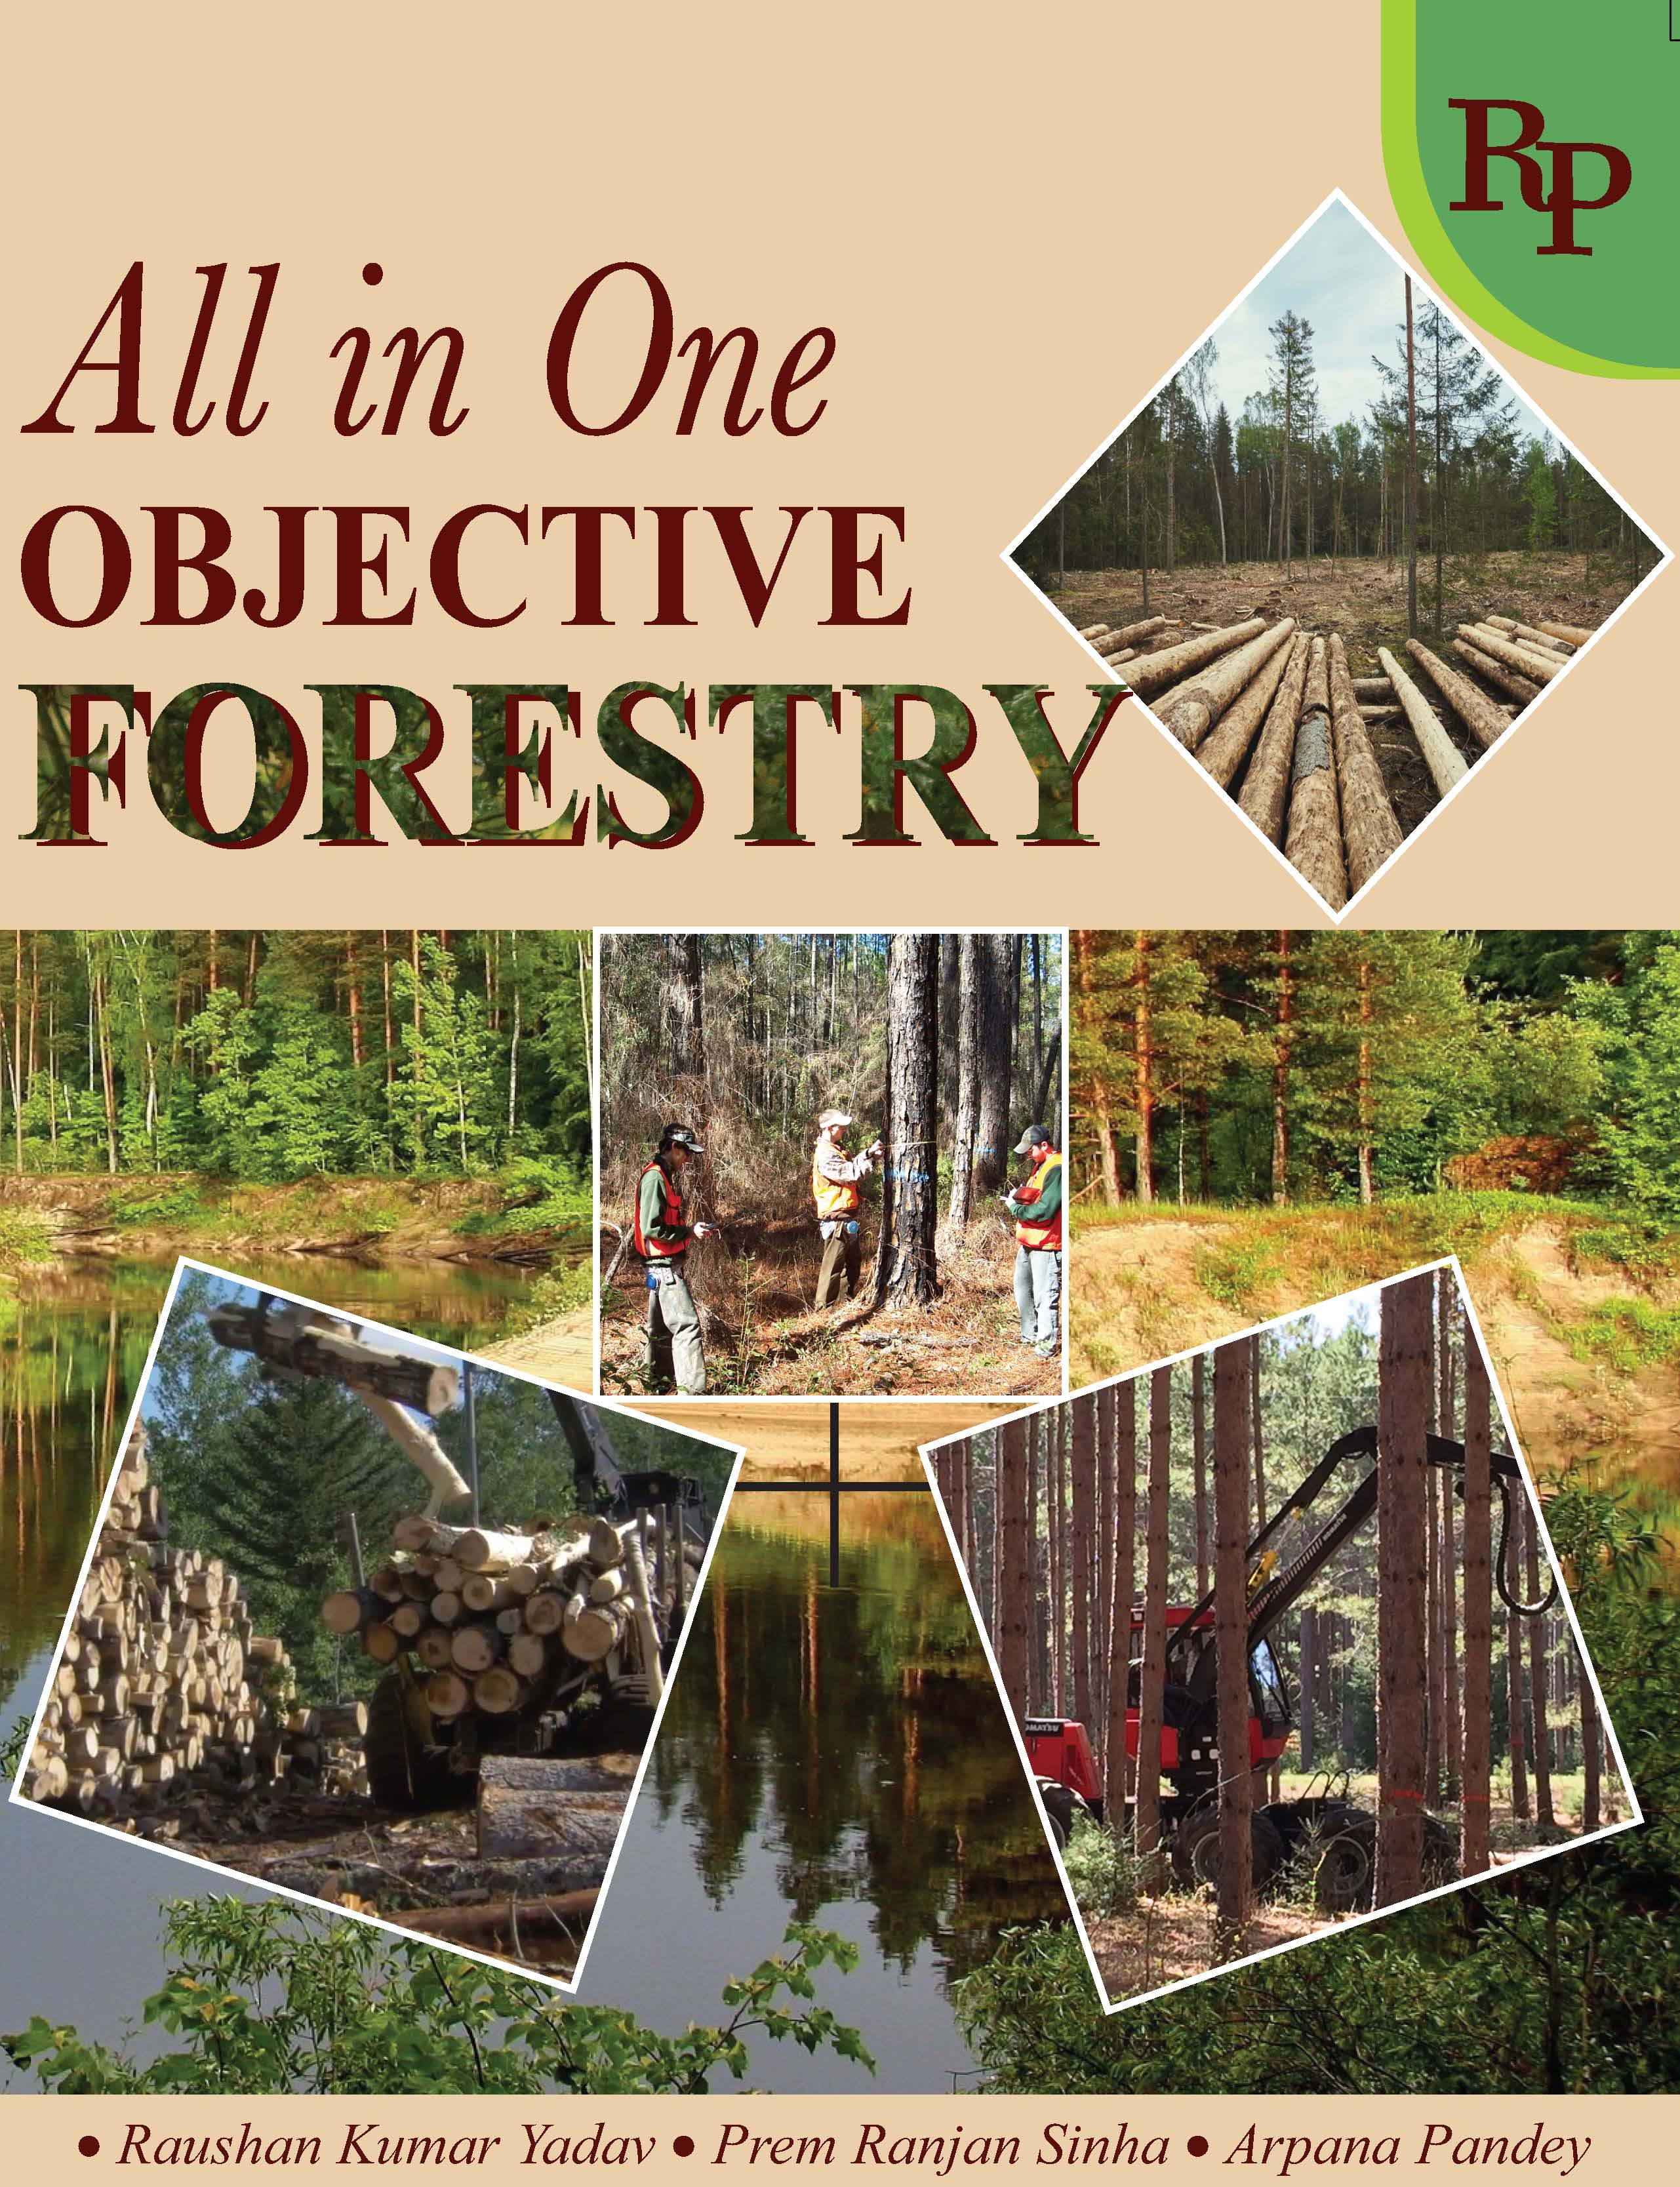 All-In-One Objective Forestry For ICAR, ARS-NET, JRF, SRF, SAU'S, FRI, ACF & RFO Examinations (Including Practice Sets & Previous Year Questions)